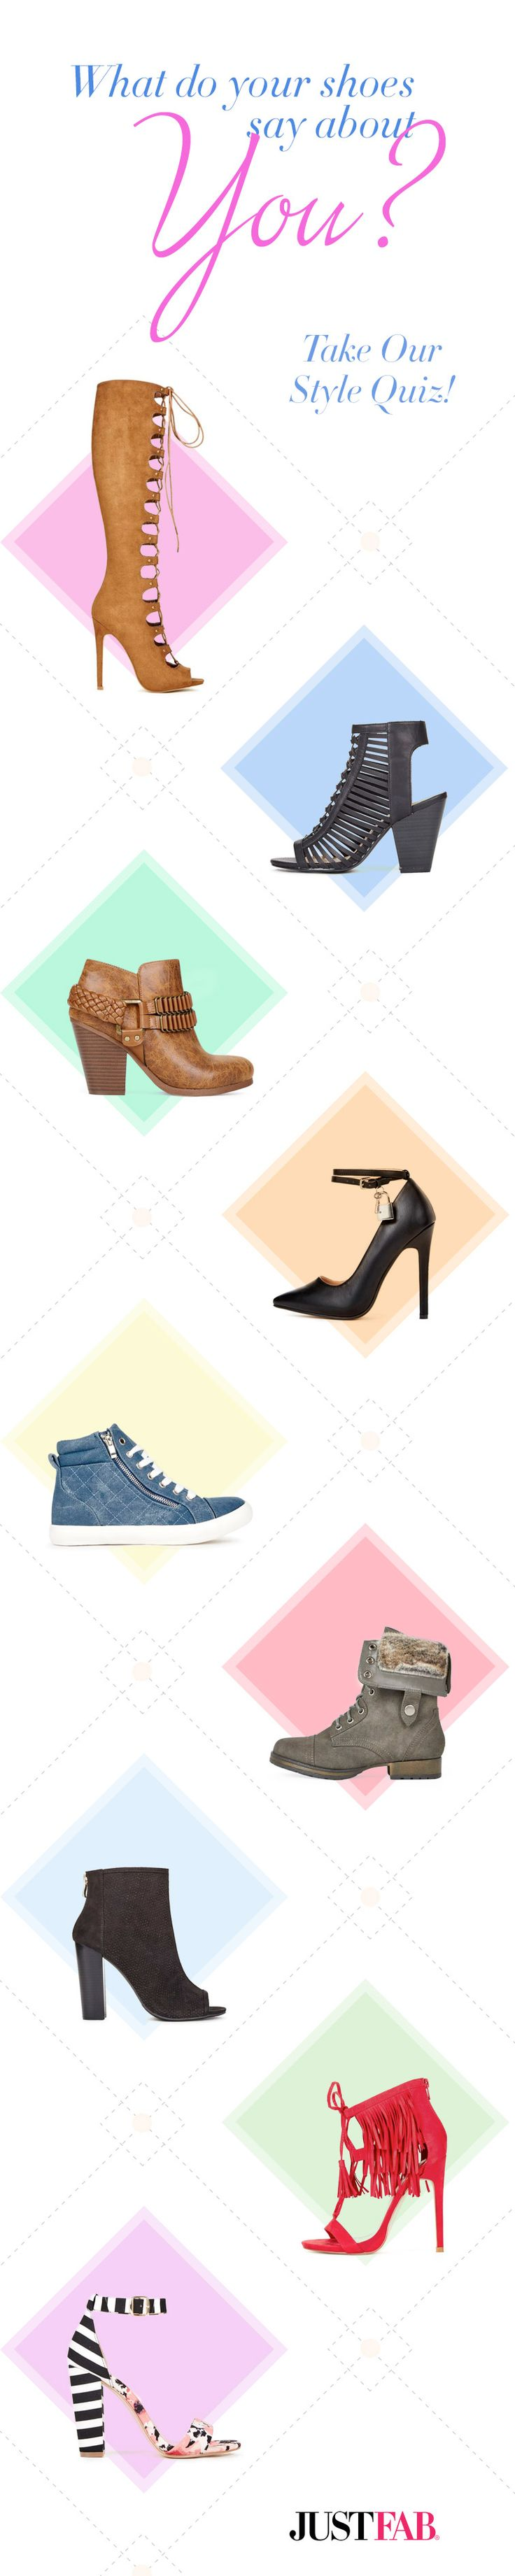 Take the Style Quiz Today and Get an Exclusive Offer - Our Gift to You ♥